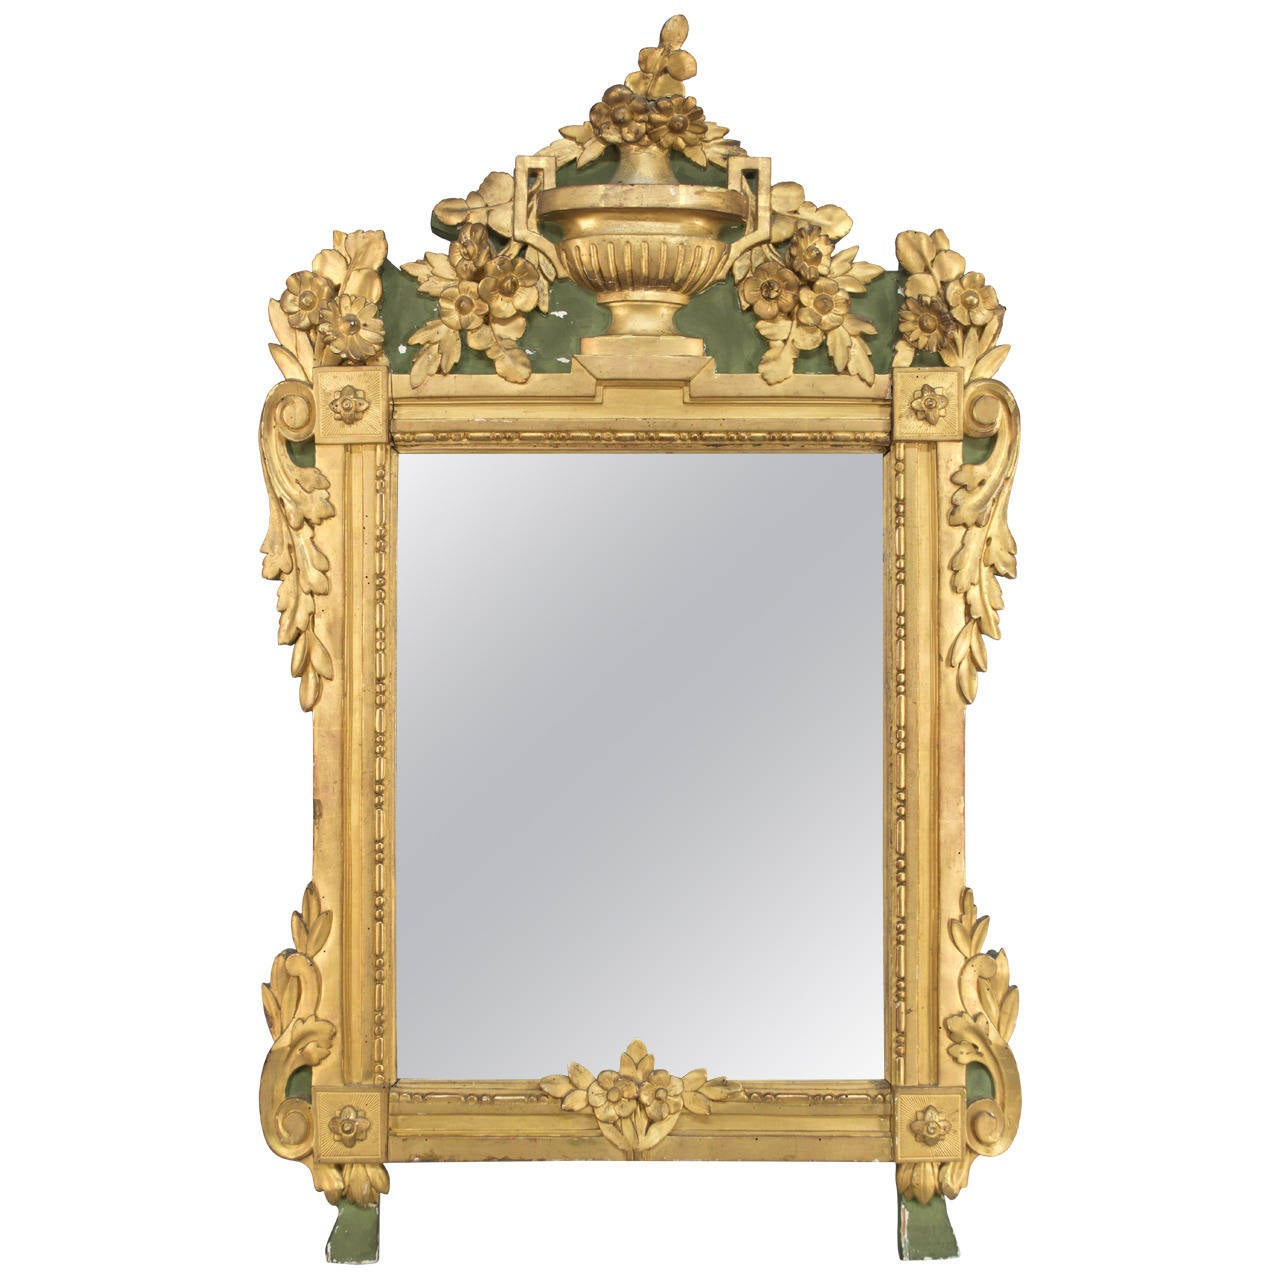 18th century french regency style mirror at 1stdibs for French mirror